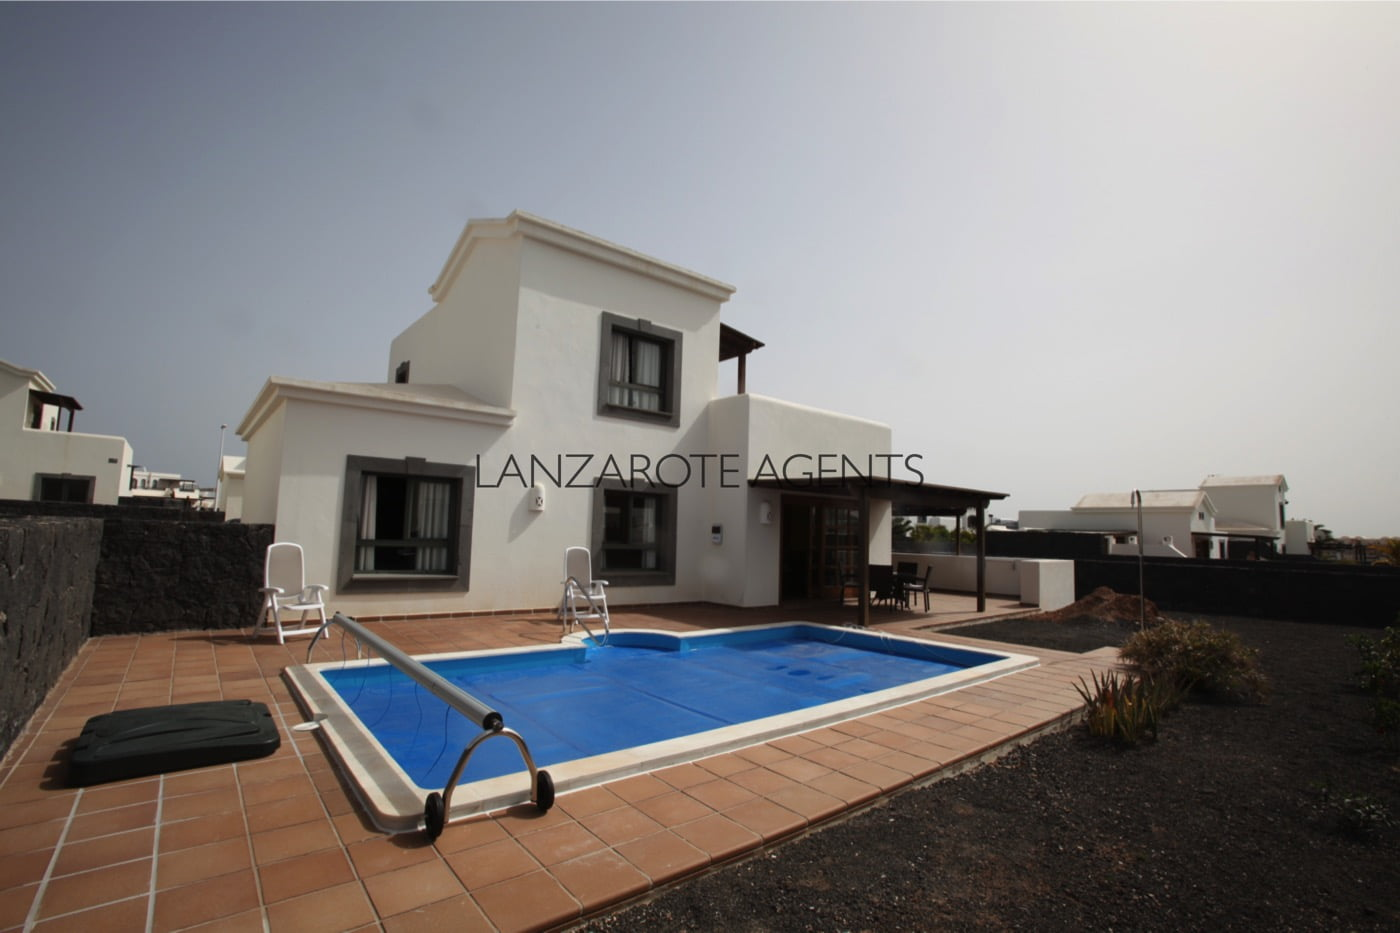 Reduced Price!!!Fabulous Detached Three Bedroom Villa in a Quiet Residential Complex at Only 2 Min from the Sea.